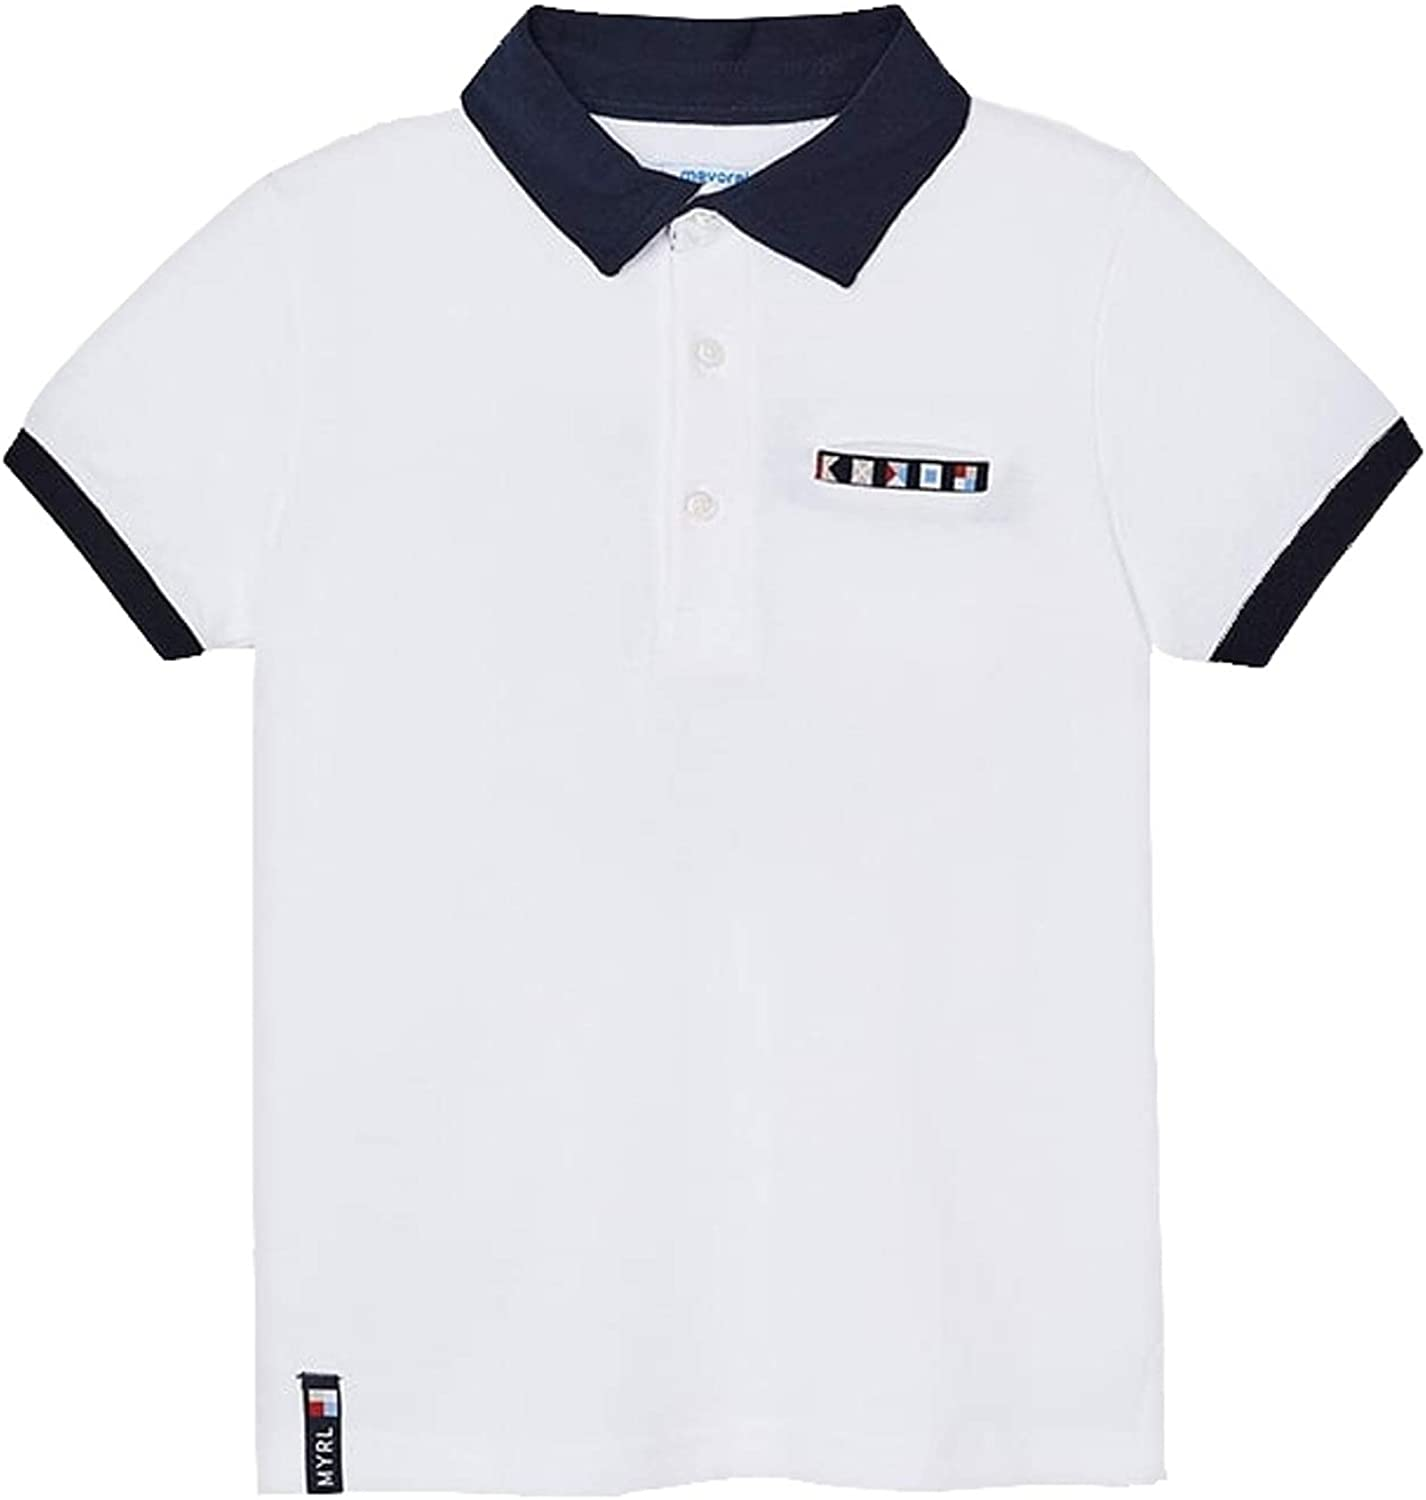 Mayoral - S/s Polo for Boys - 3104, White